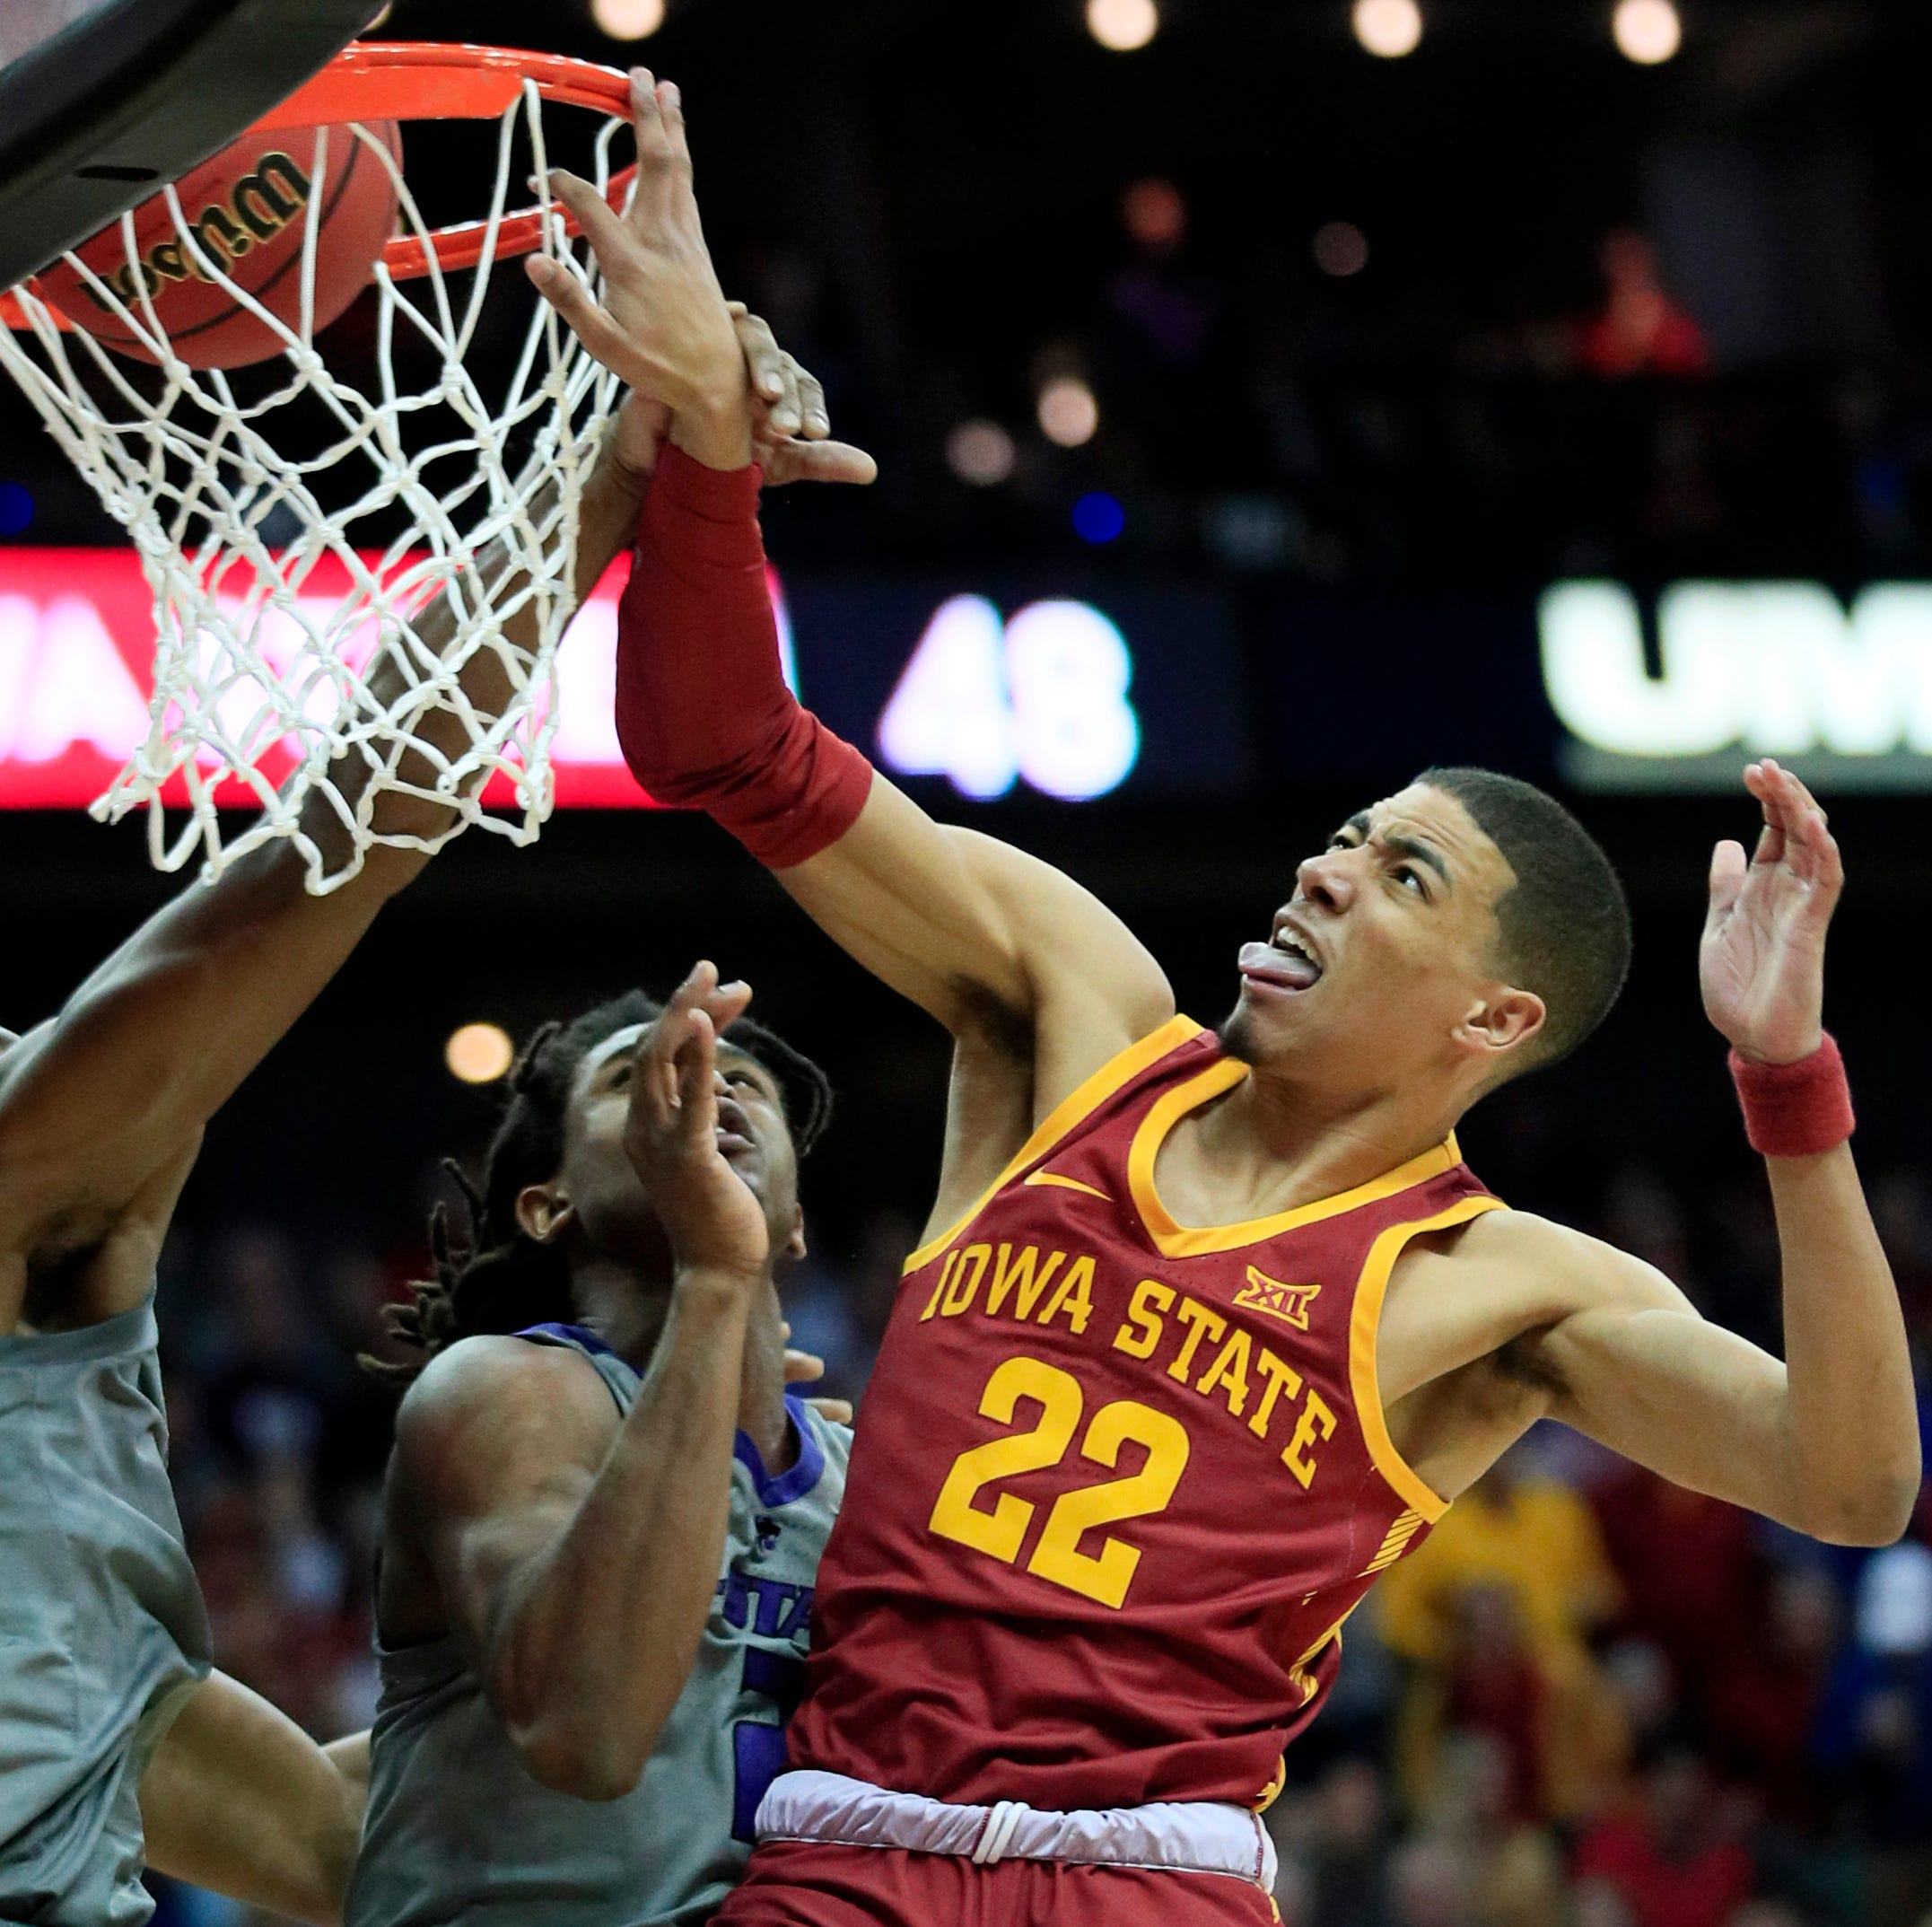 Peterson: What'd Prohm say about Iowa State and the NCAA tourney? Just put us in Des Moines